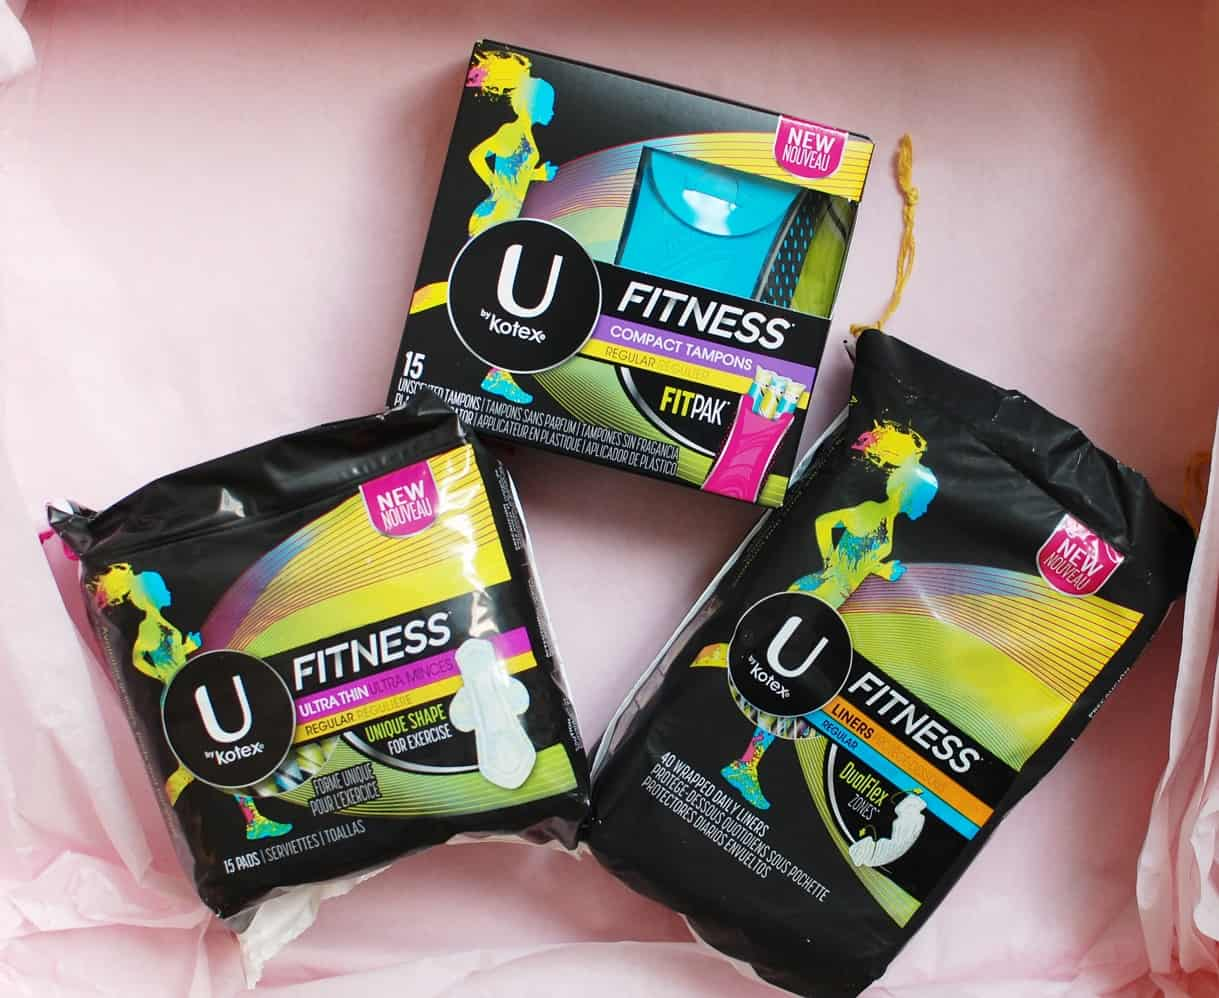 Racing with your period? Try U by Kotex FITNESS products!